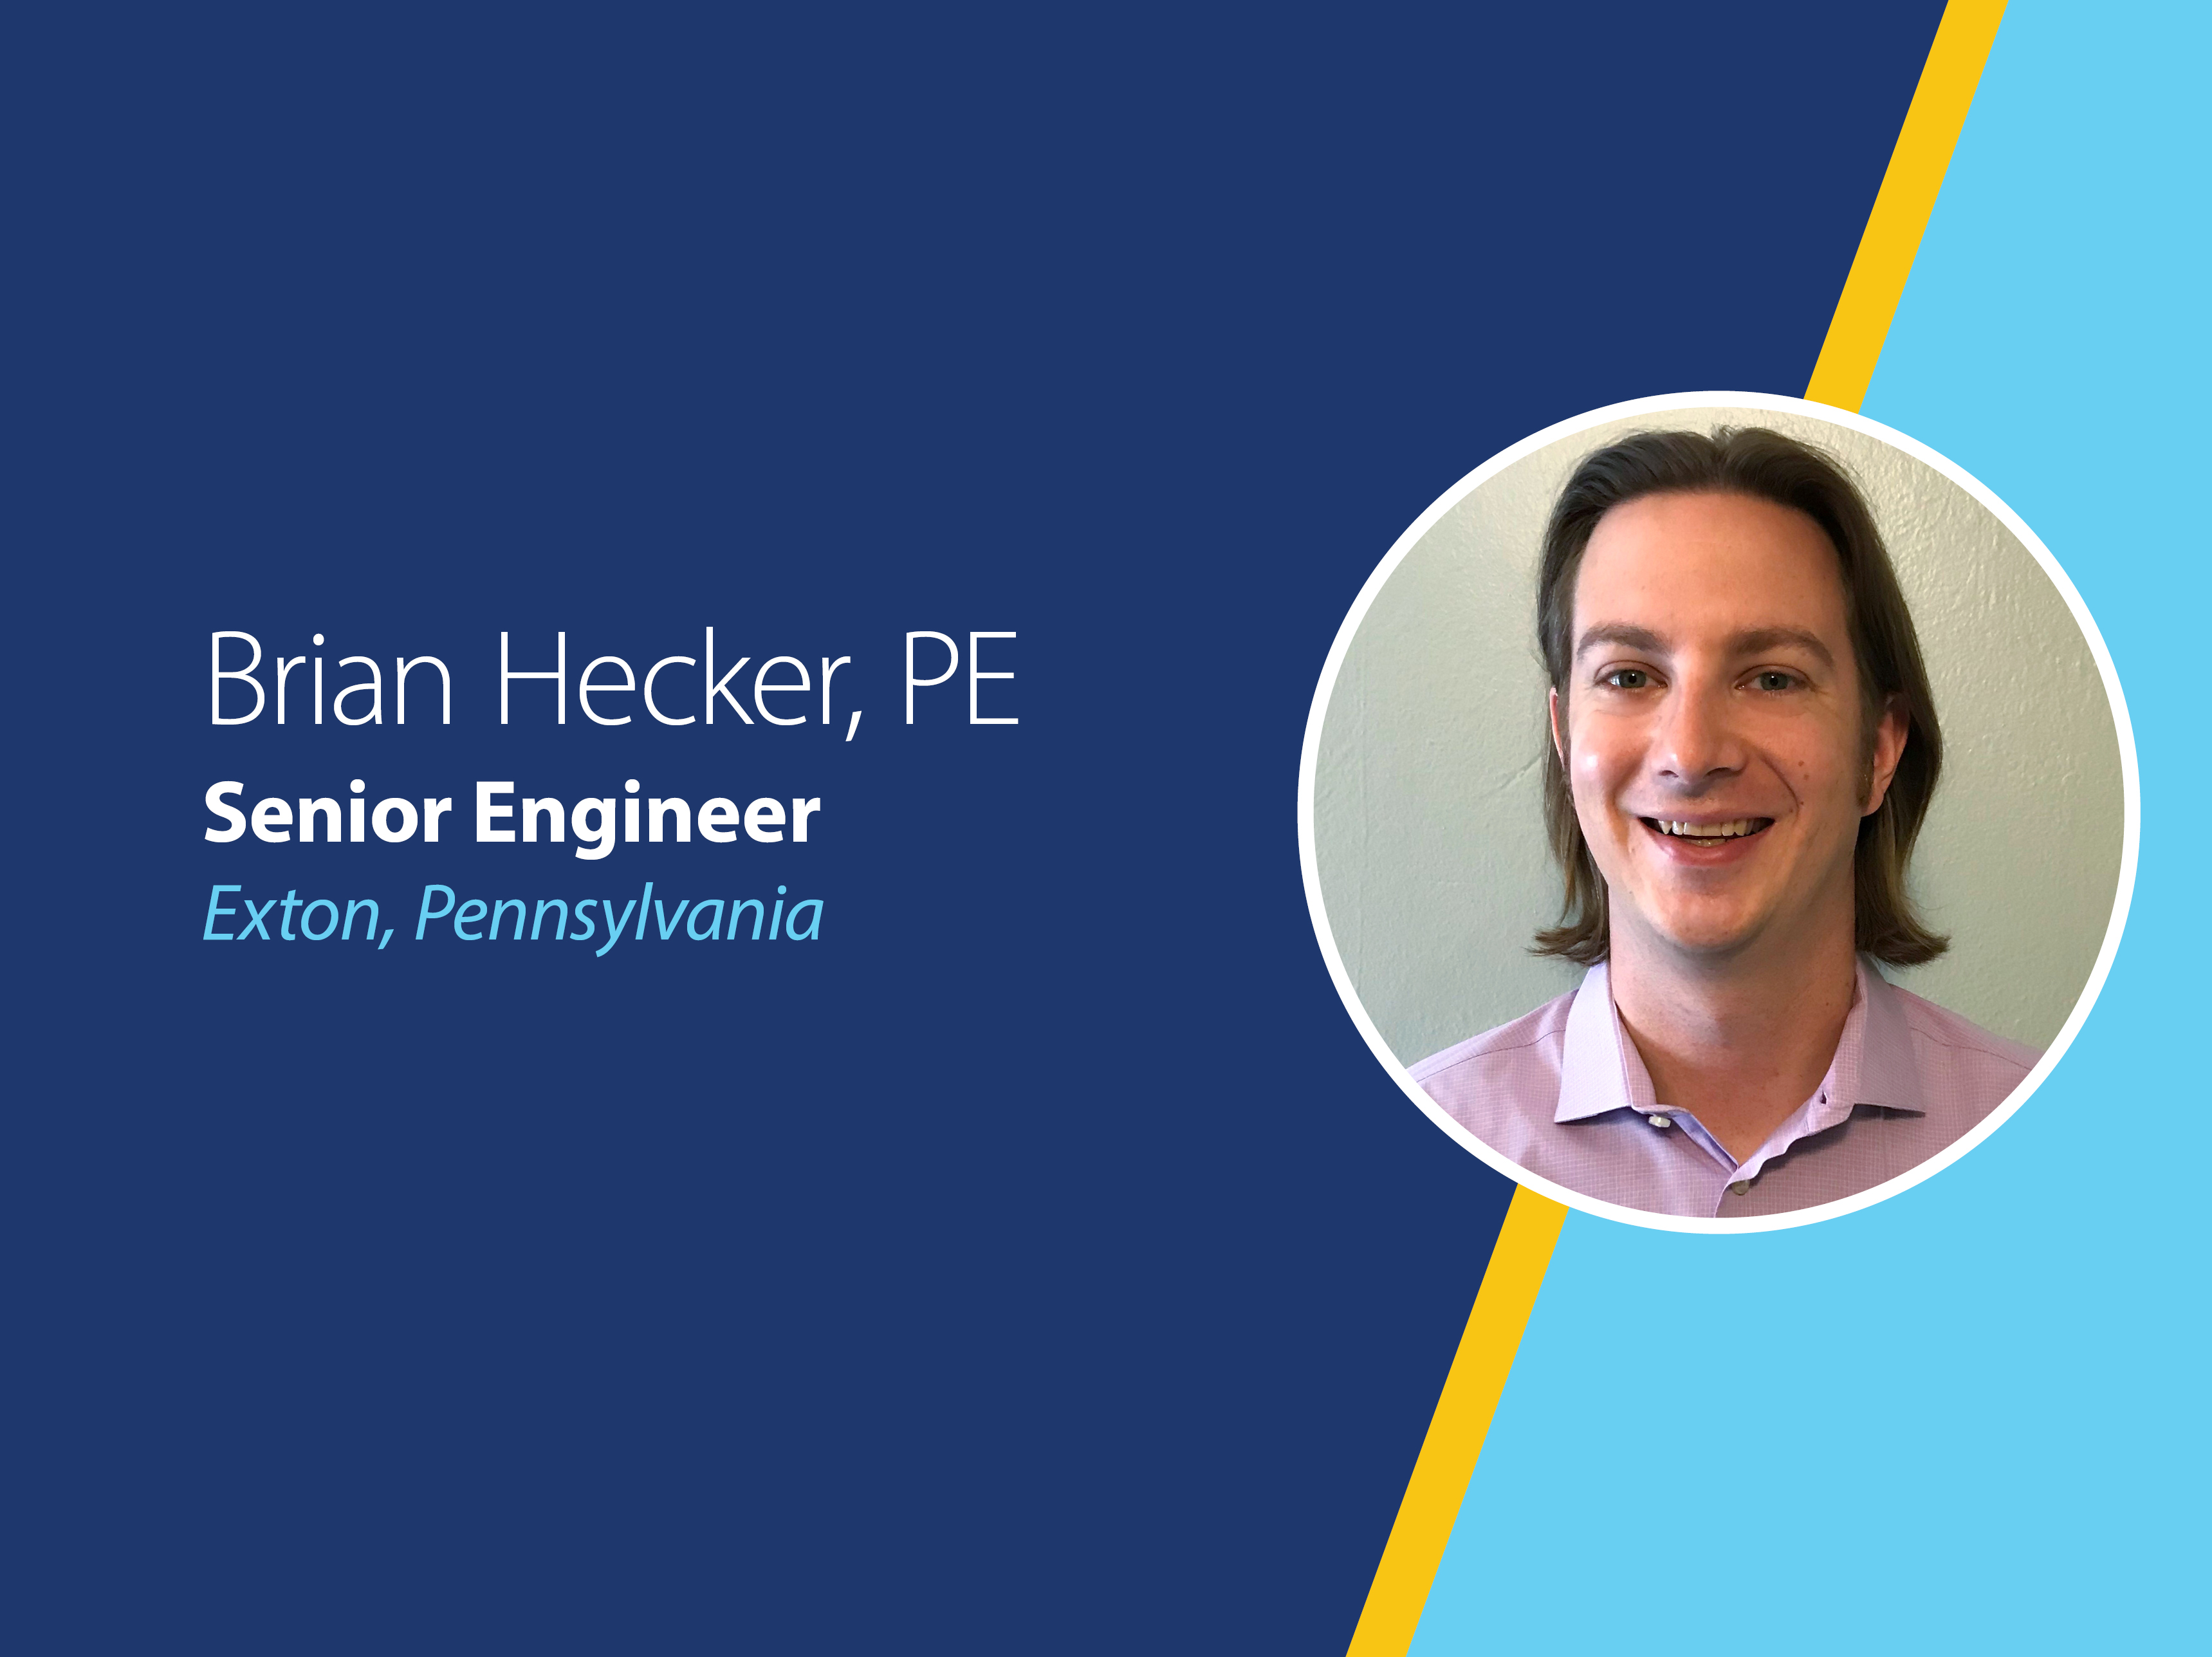 Brian Hecker, PE, Senior Engineer, GES